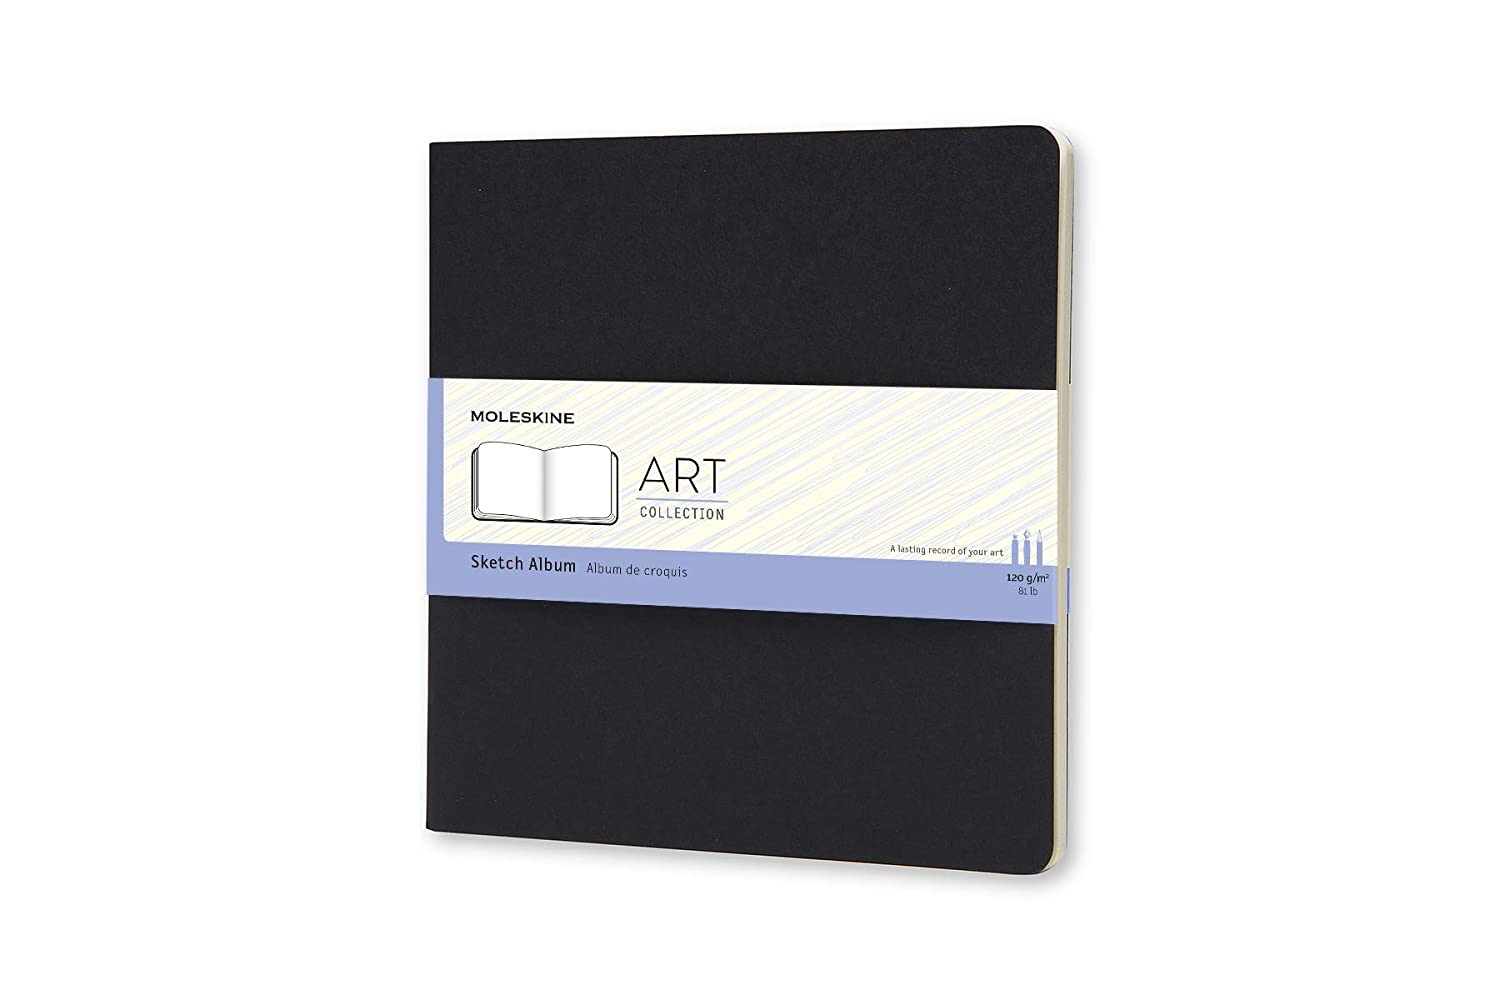 Moleskine - Art Collection - Album de Croquis, Carnet de Croquis avec Couverture Rigide, Papier pour Stylos, Crayons de Couleur, Fusain - Couleur Noir - Carré Taille 19 x 19 cm, 88 Pages